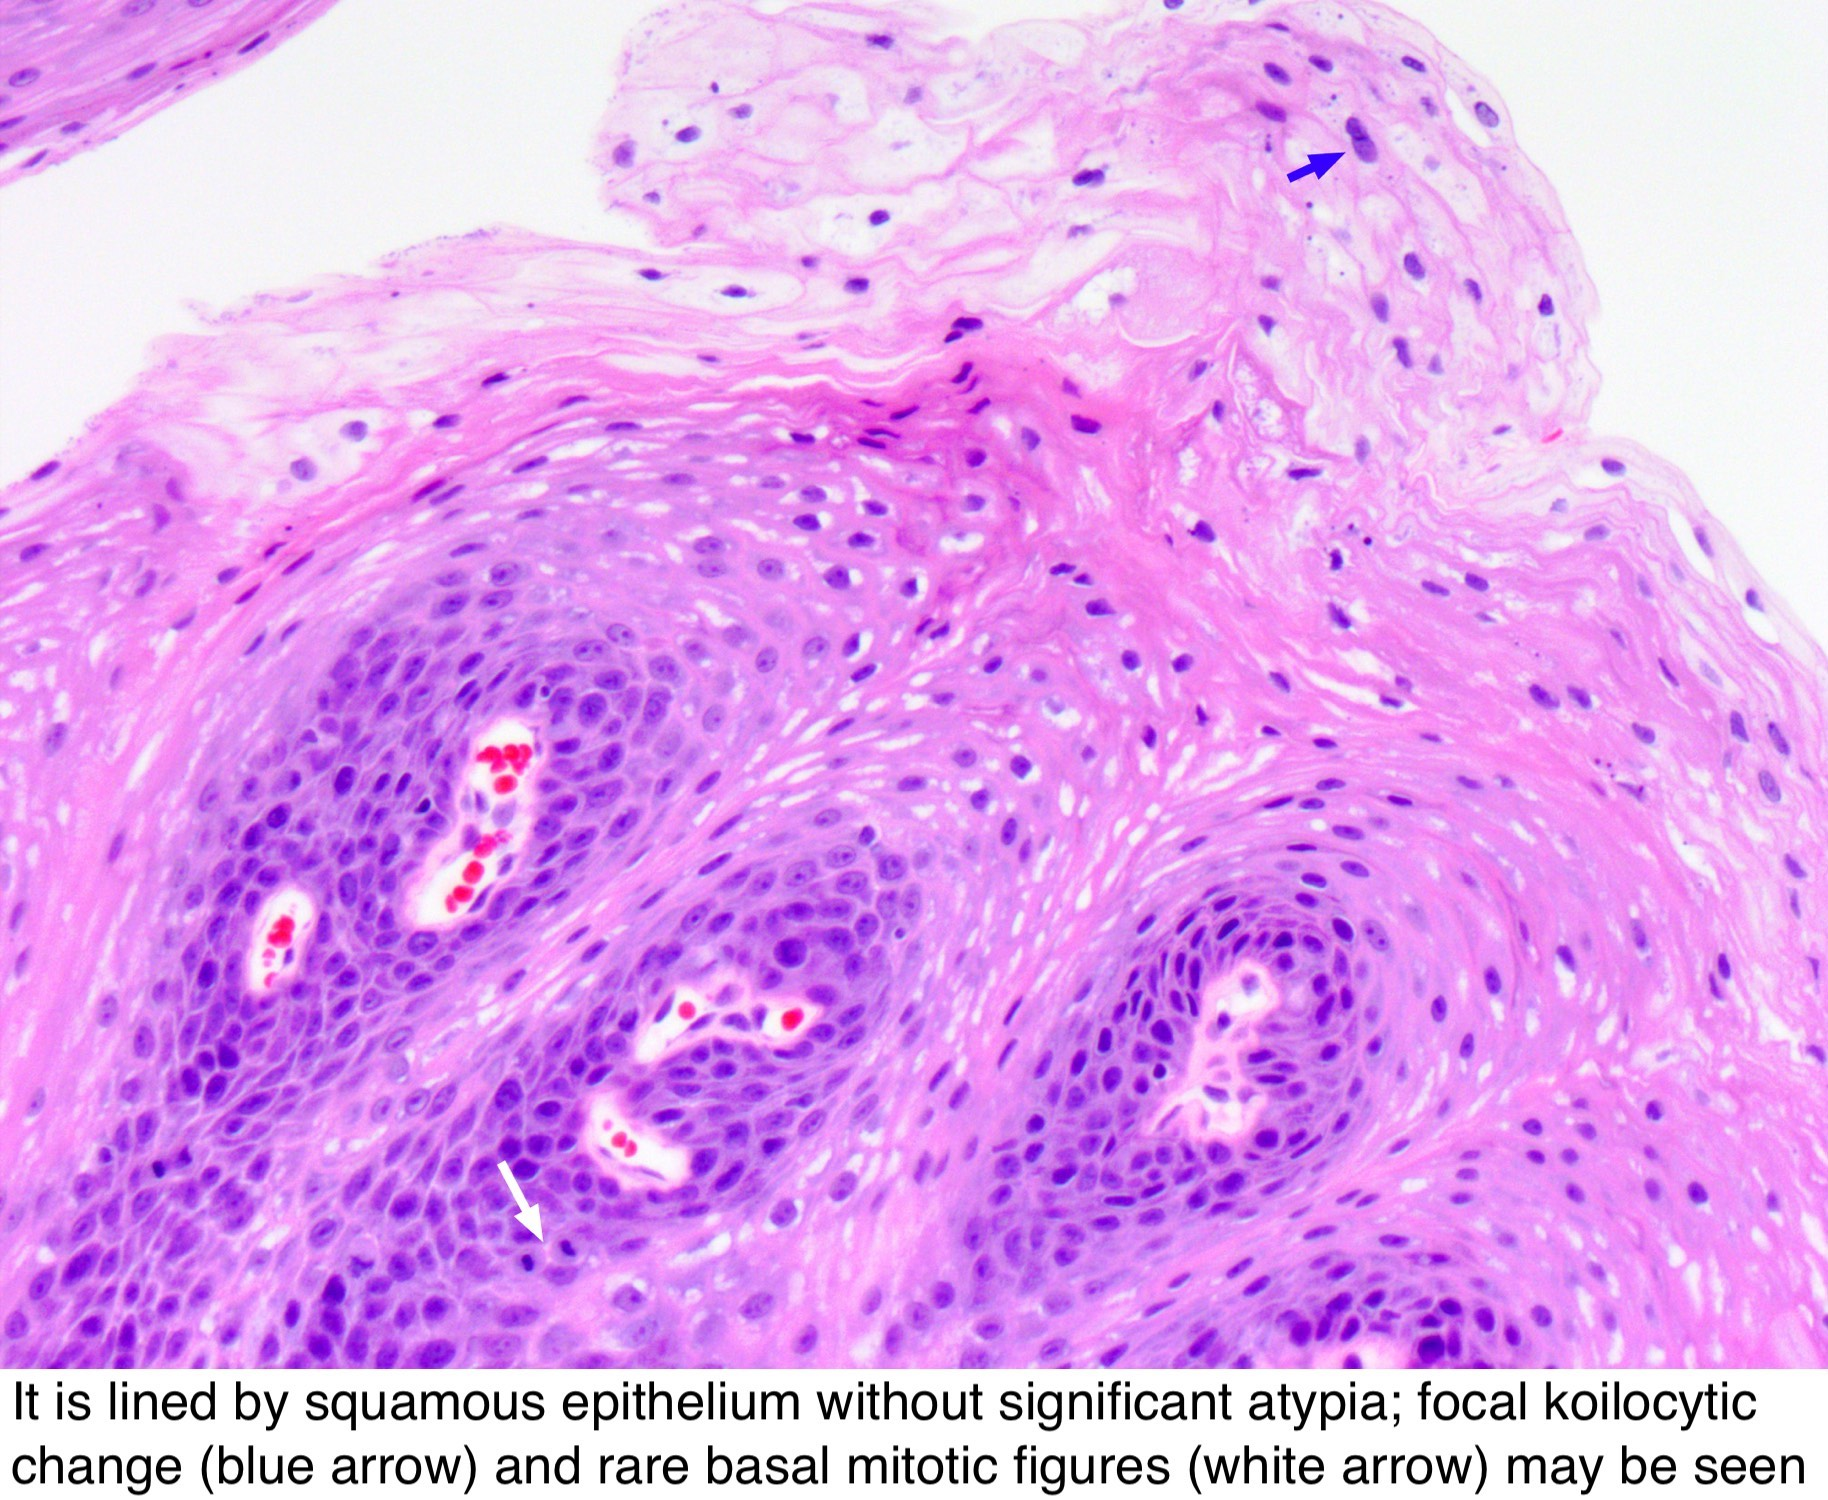 Squamous papilloma polyp Hpv vaccine pathology